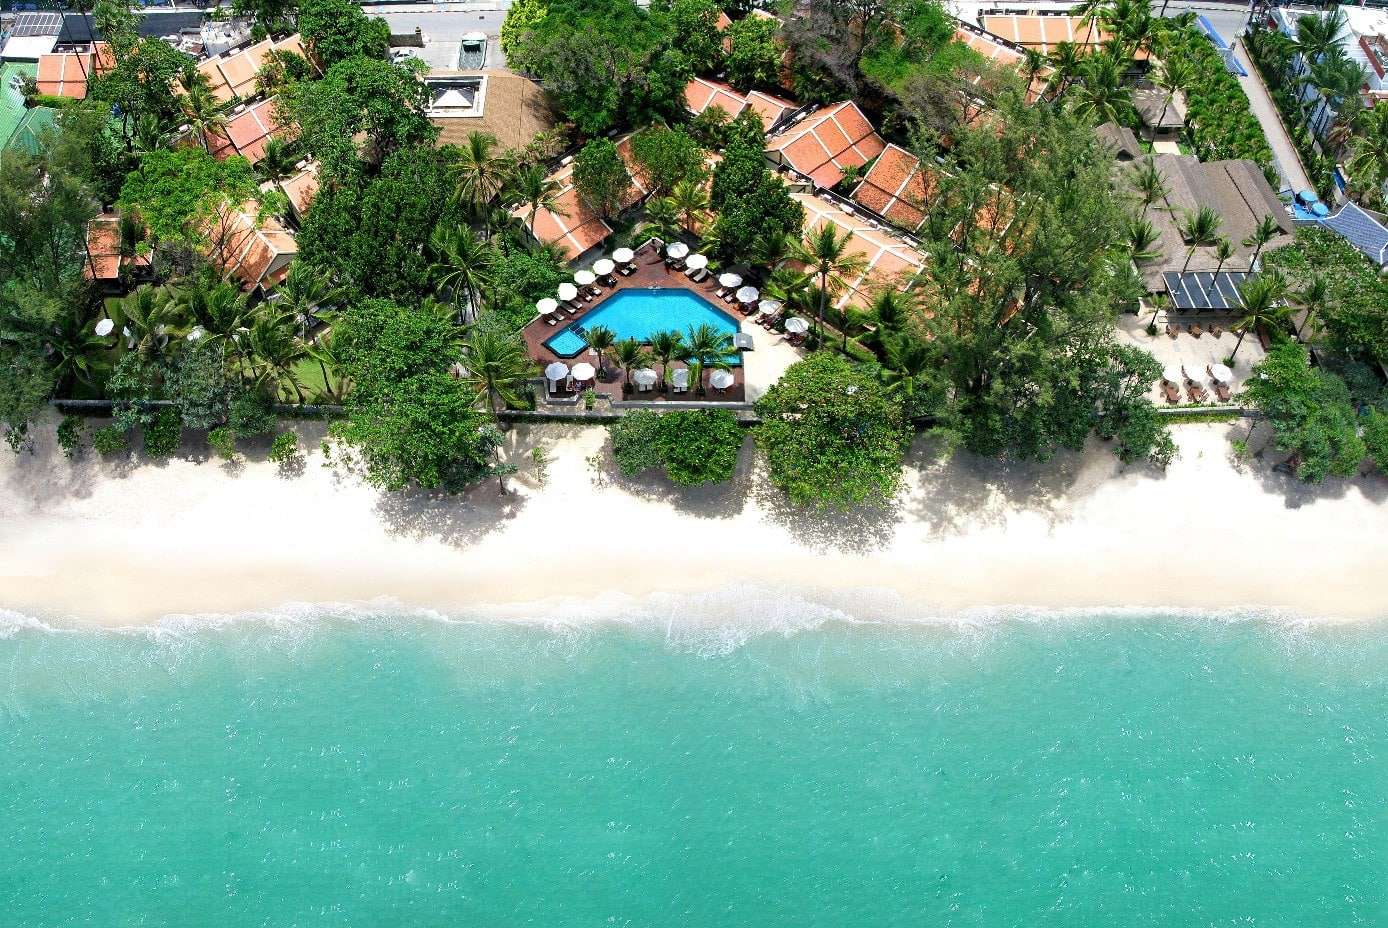 Impiana Resort Patong from above